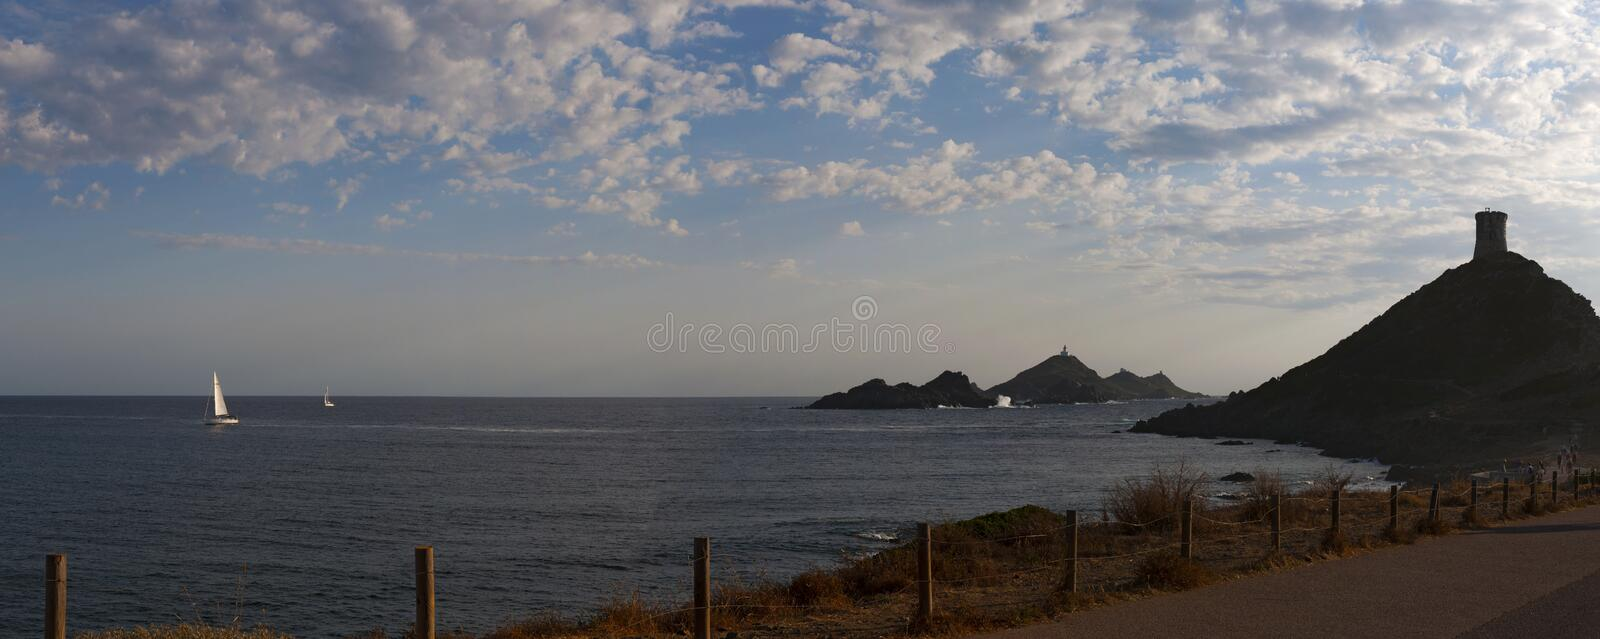 Iles Sanguinaires, Gulf of Ajaccio, Corsica, Corse, France, Europe, island. Corsica, 01/09/2017: sunset on La Parata Tower, ruined Genoese tower built in 1608 on stock image